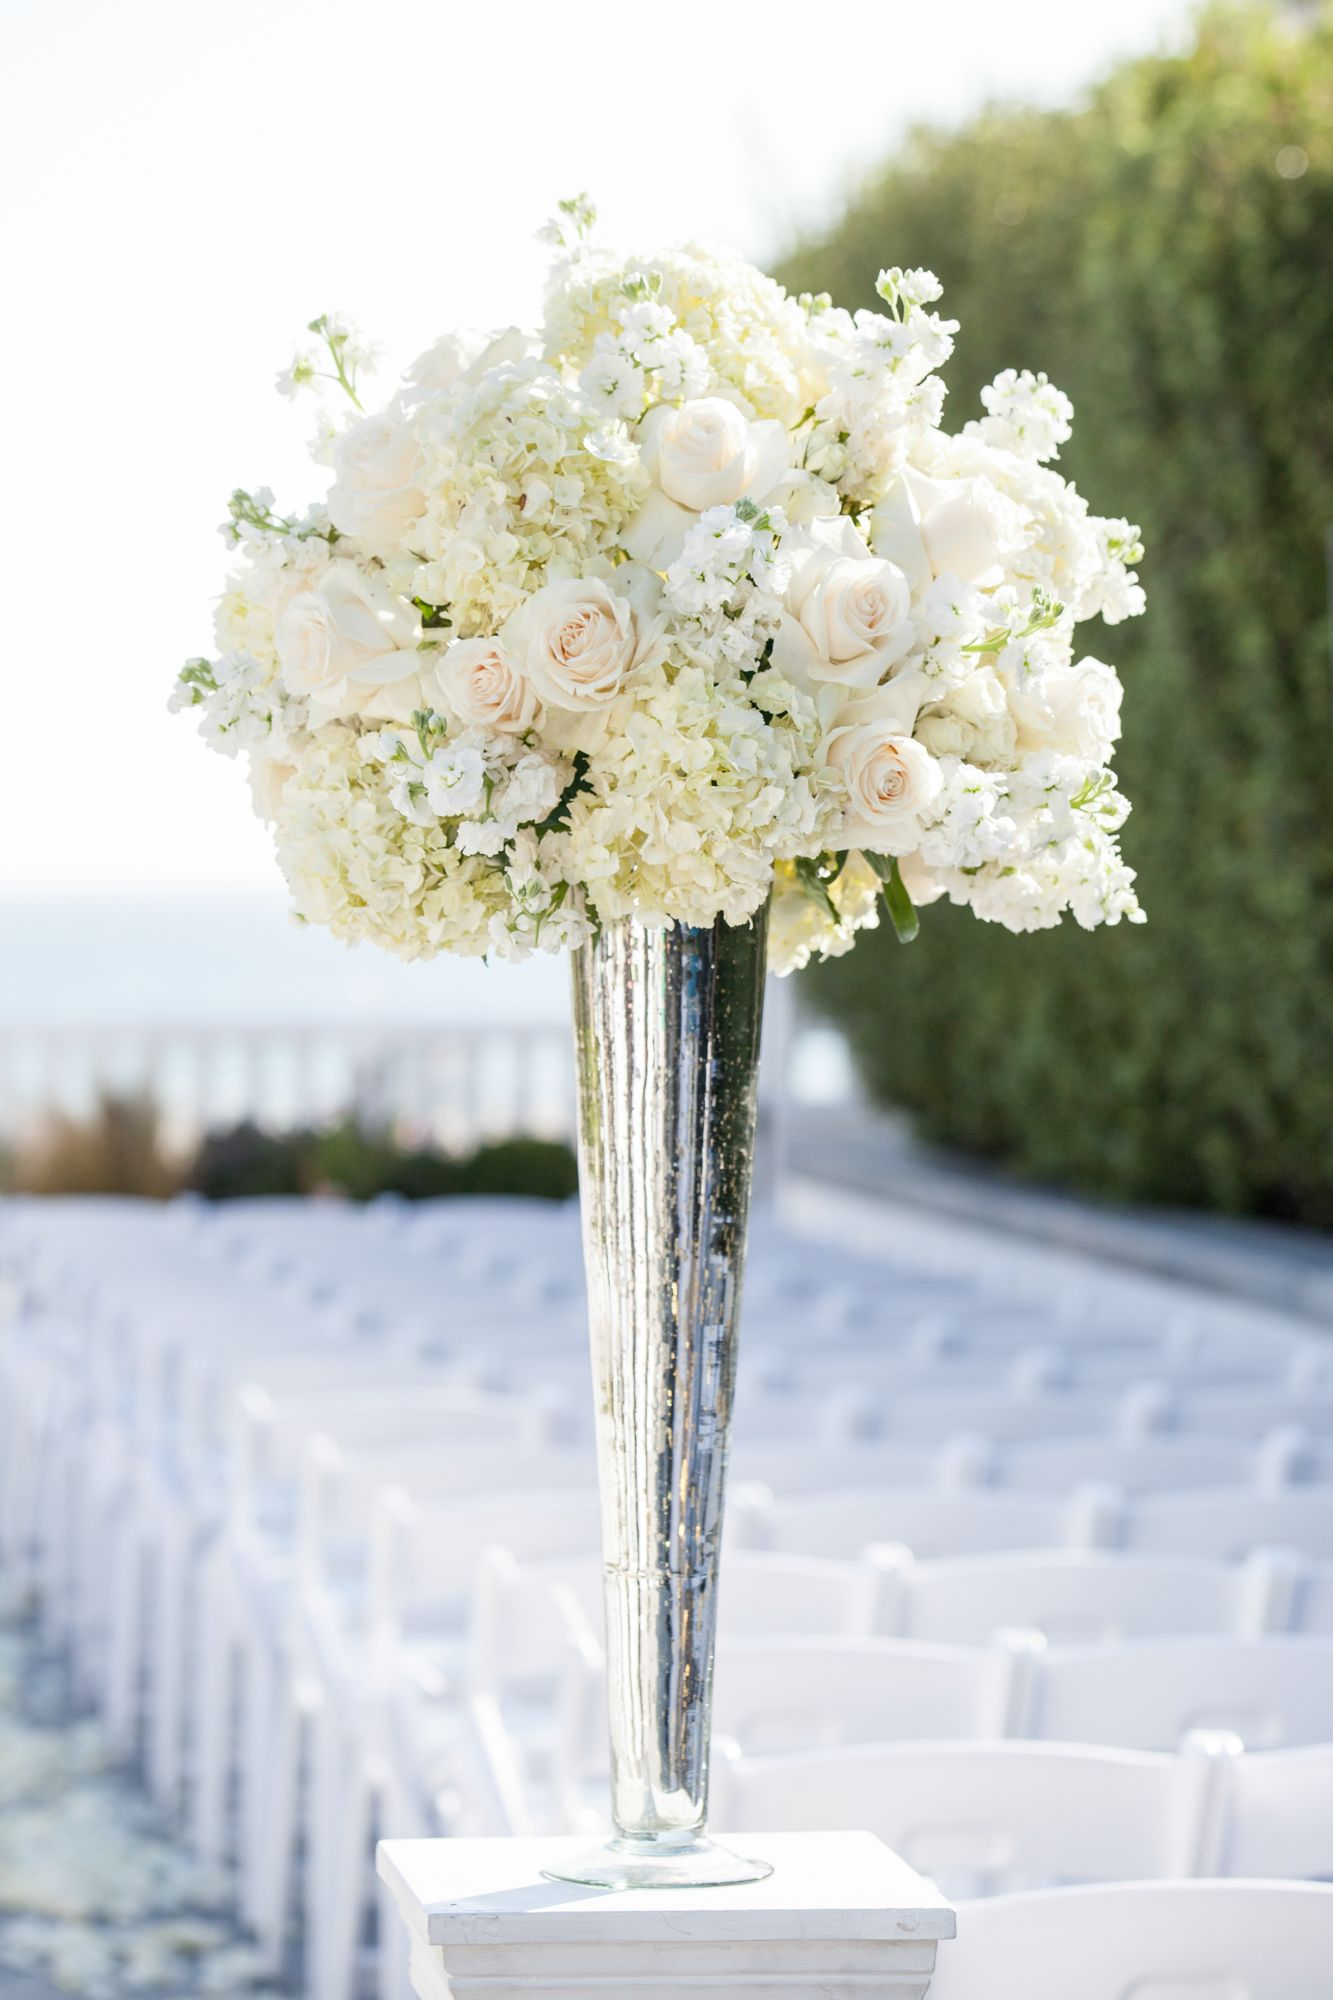 Hydrangea Centerpieces Tall : Tall white rose and hydrangea centerpiece in a silver